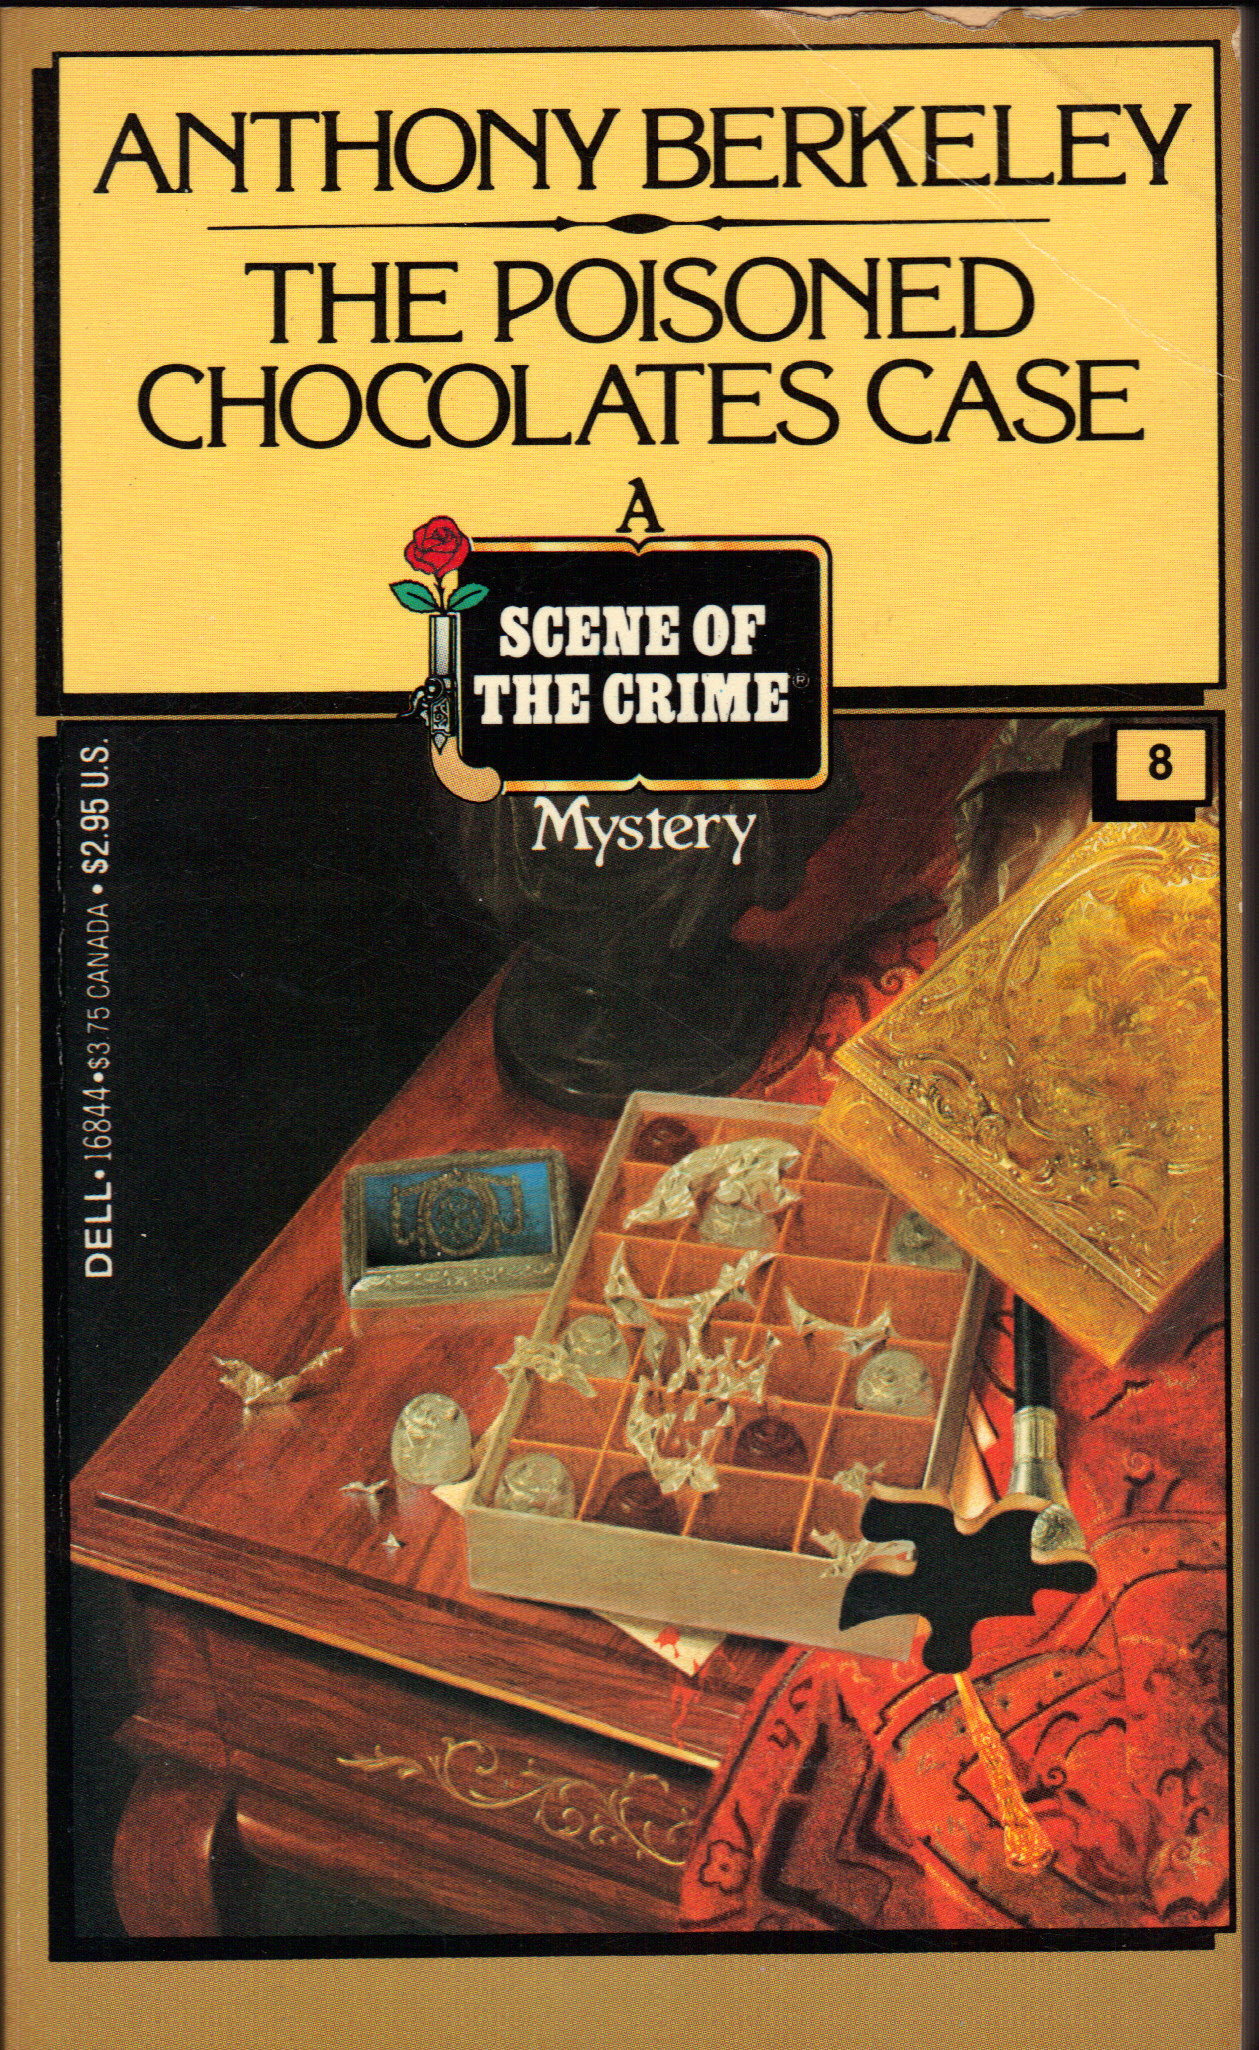 Image for THE POISONED CHOCOLATES CASE